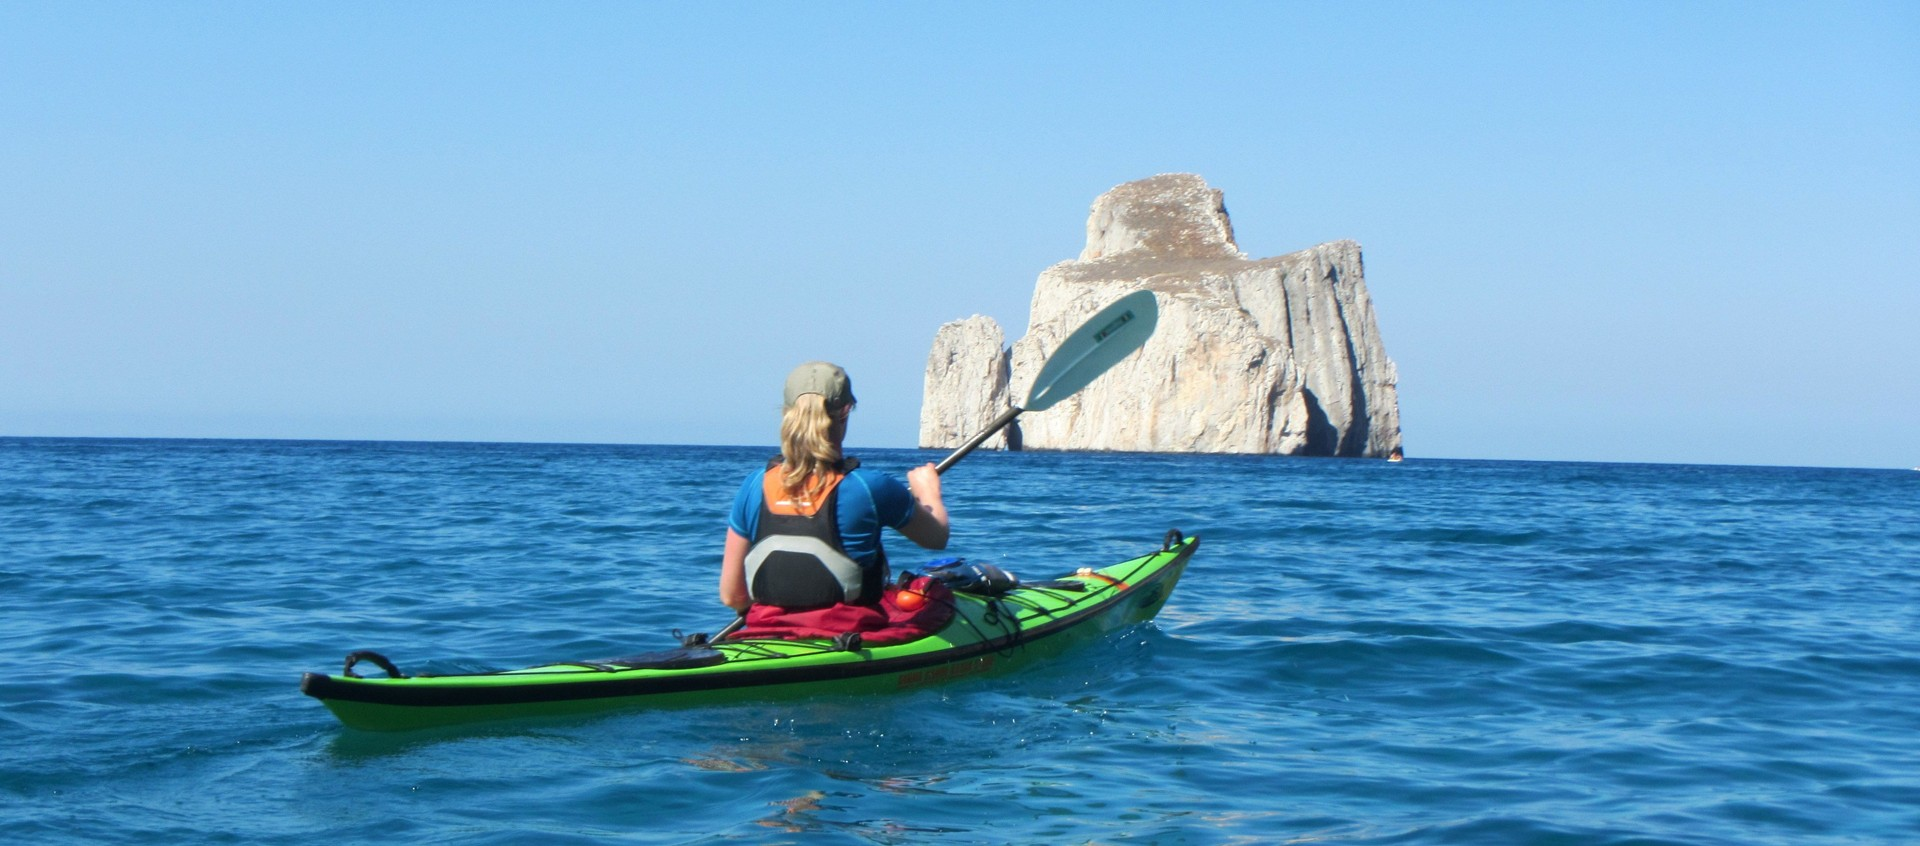 Pan di Zucchero 2.JPG - Sardinia - Daily Kayaking Trips - Kayaking